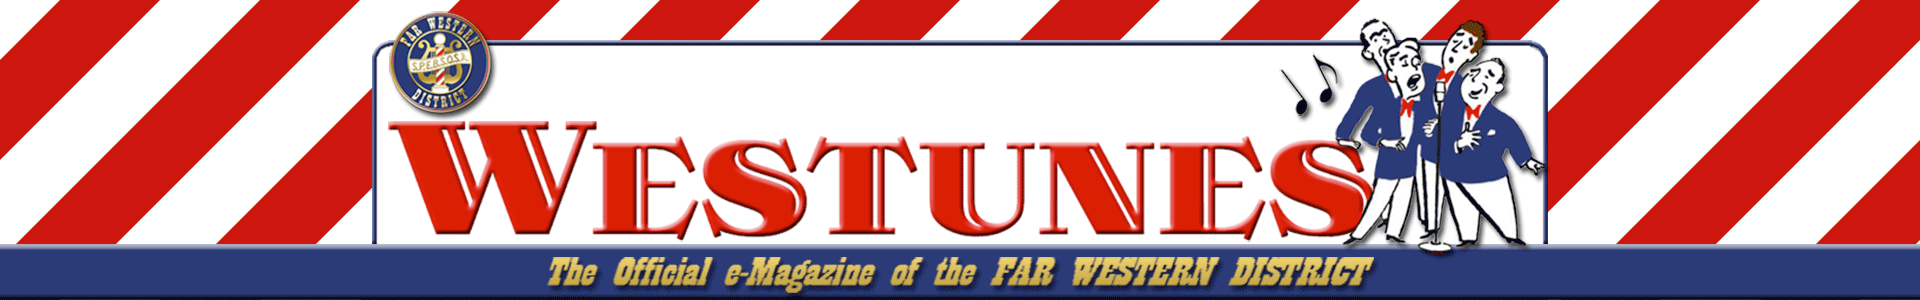 Westunes, the Official eMagazine of the Far Western District